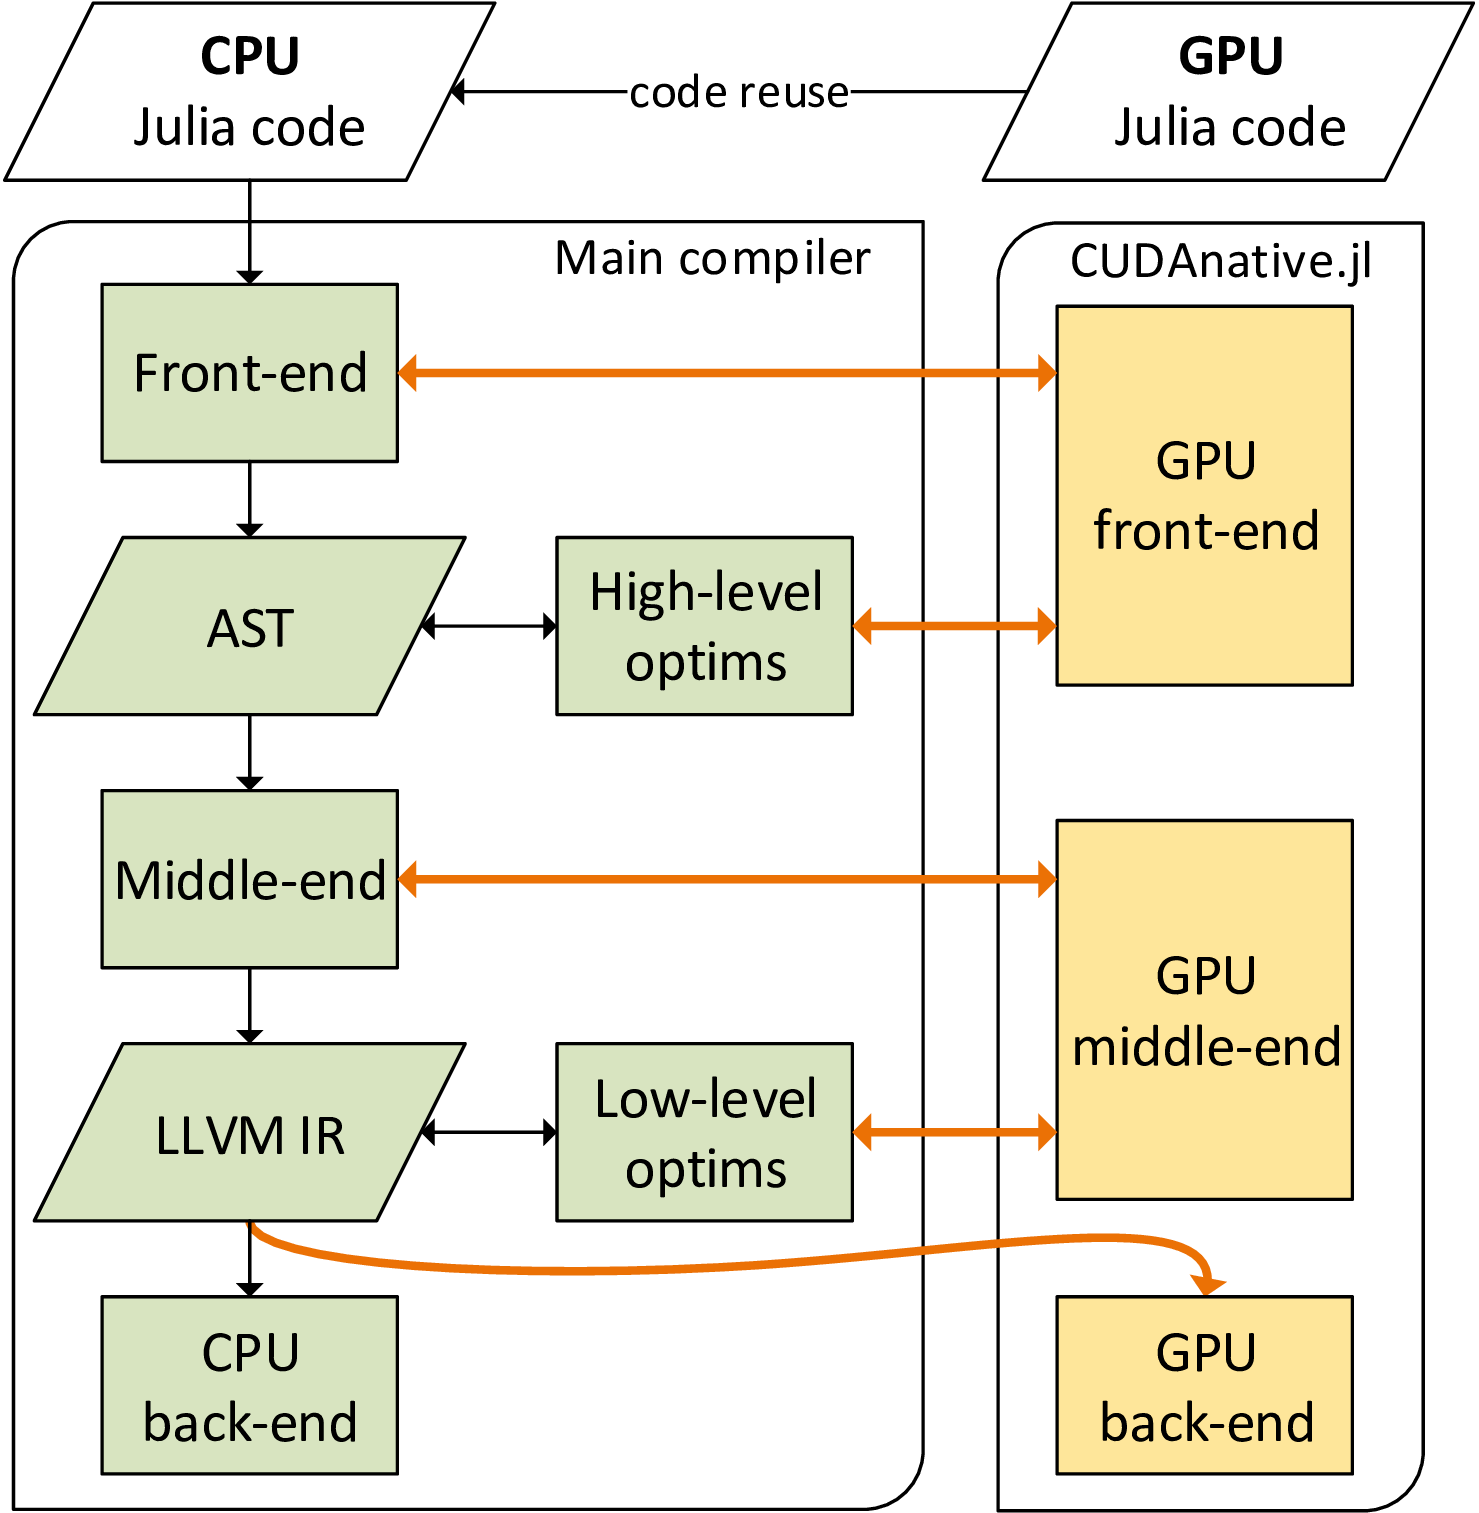 Figure 2. Schematic overview of the CUDAnative.jl compiler.